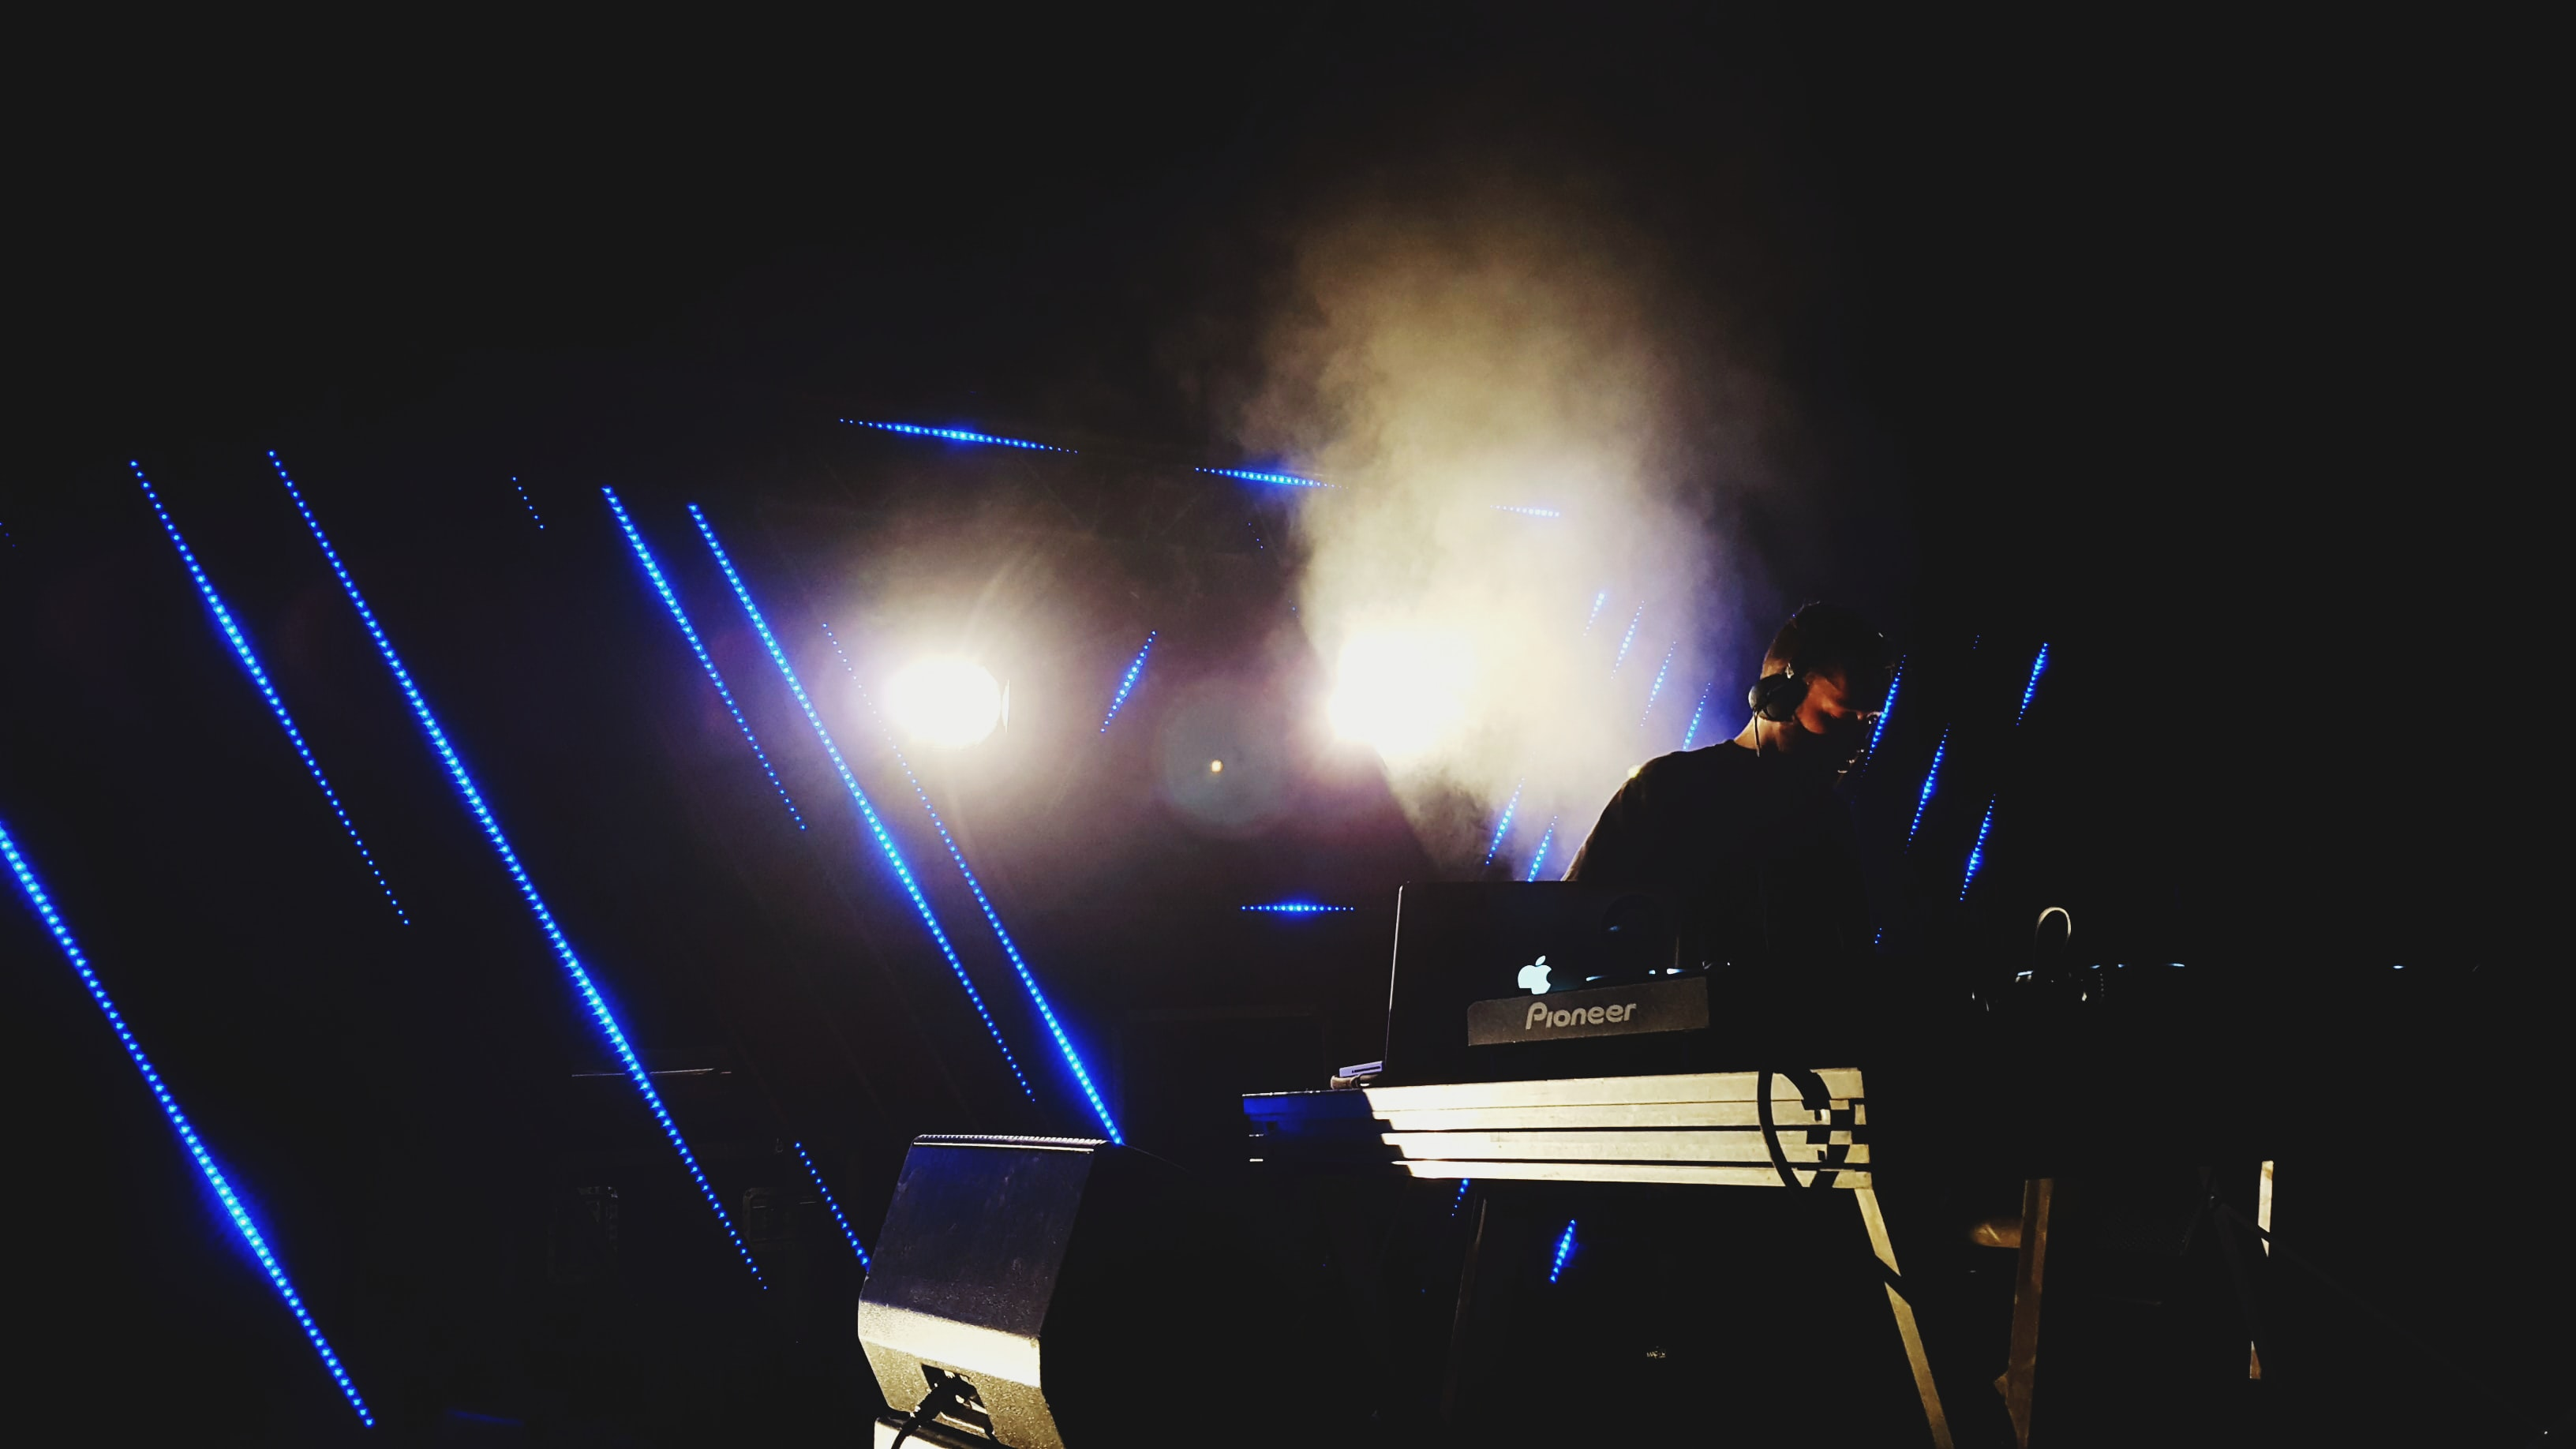 A male DJ performing in a dark club with pale blue lights behind him